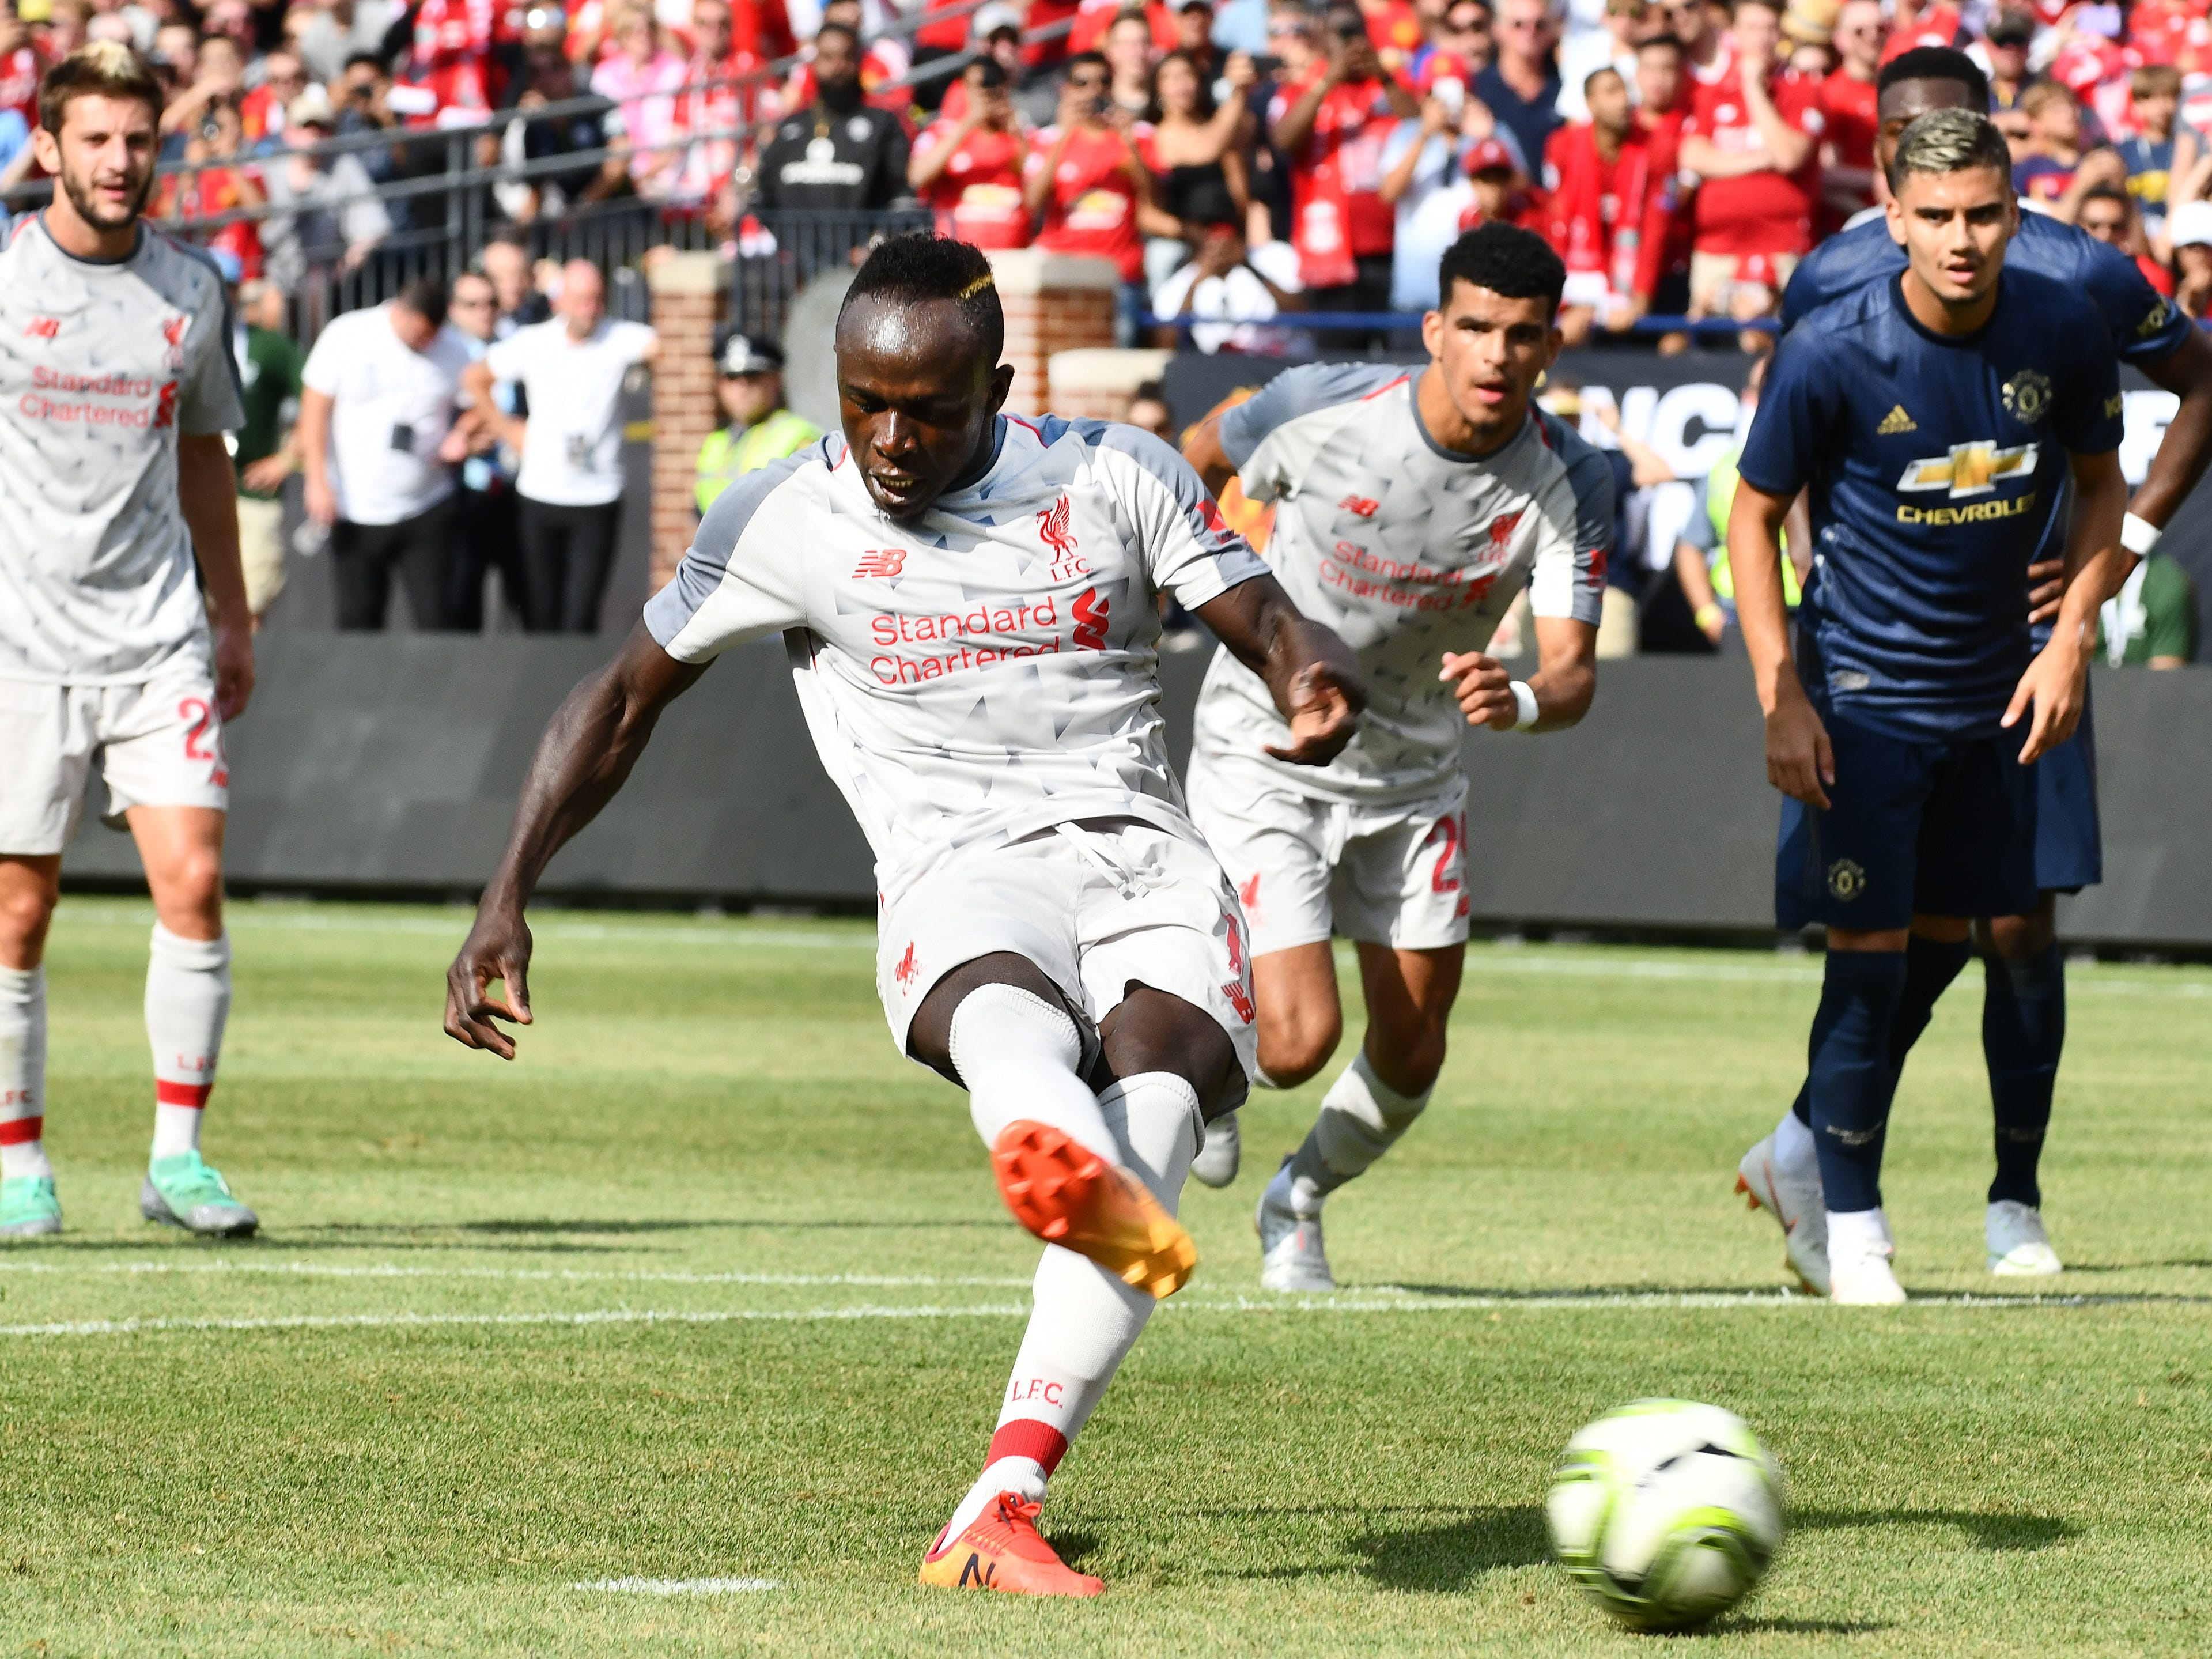 Liverpool's Said Mane' puts in a penalty shot for the first goal of the game in the first half.